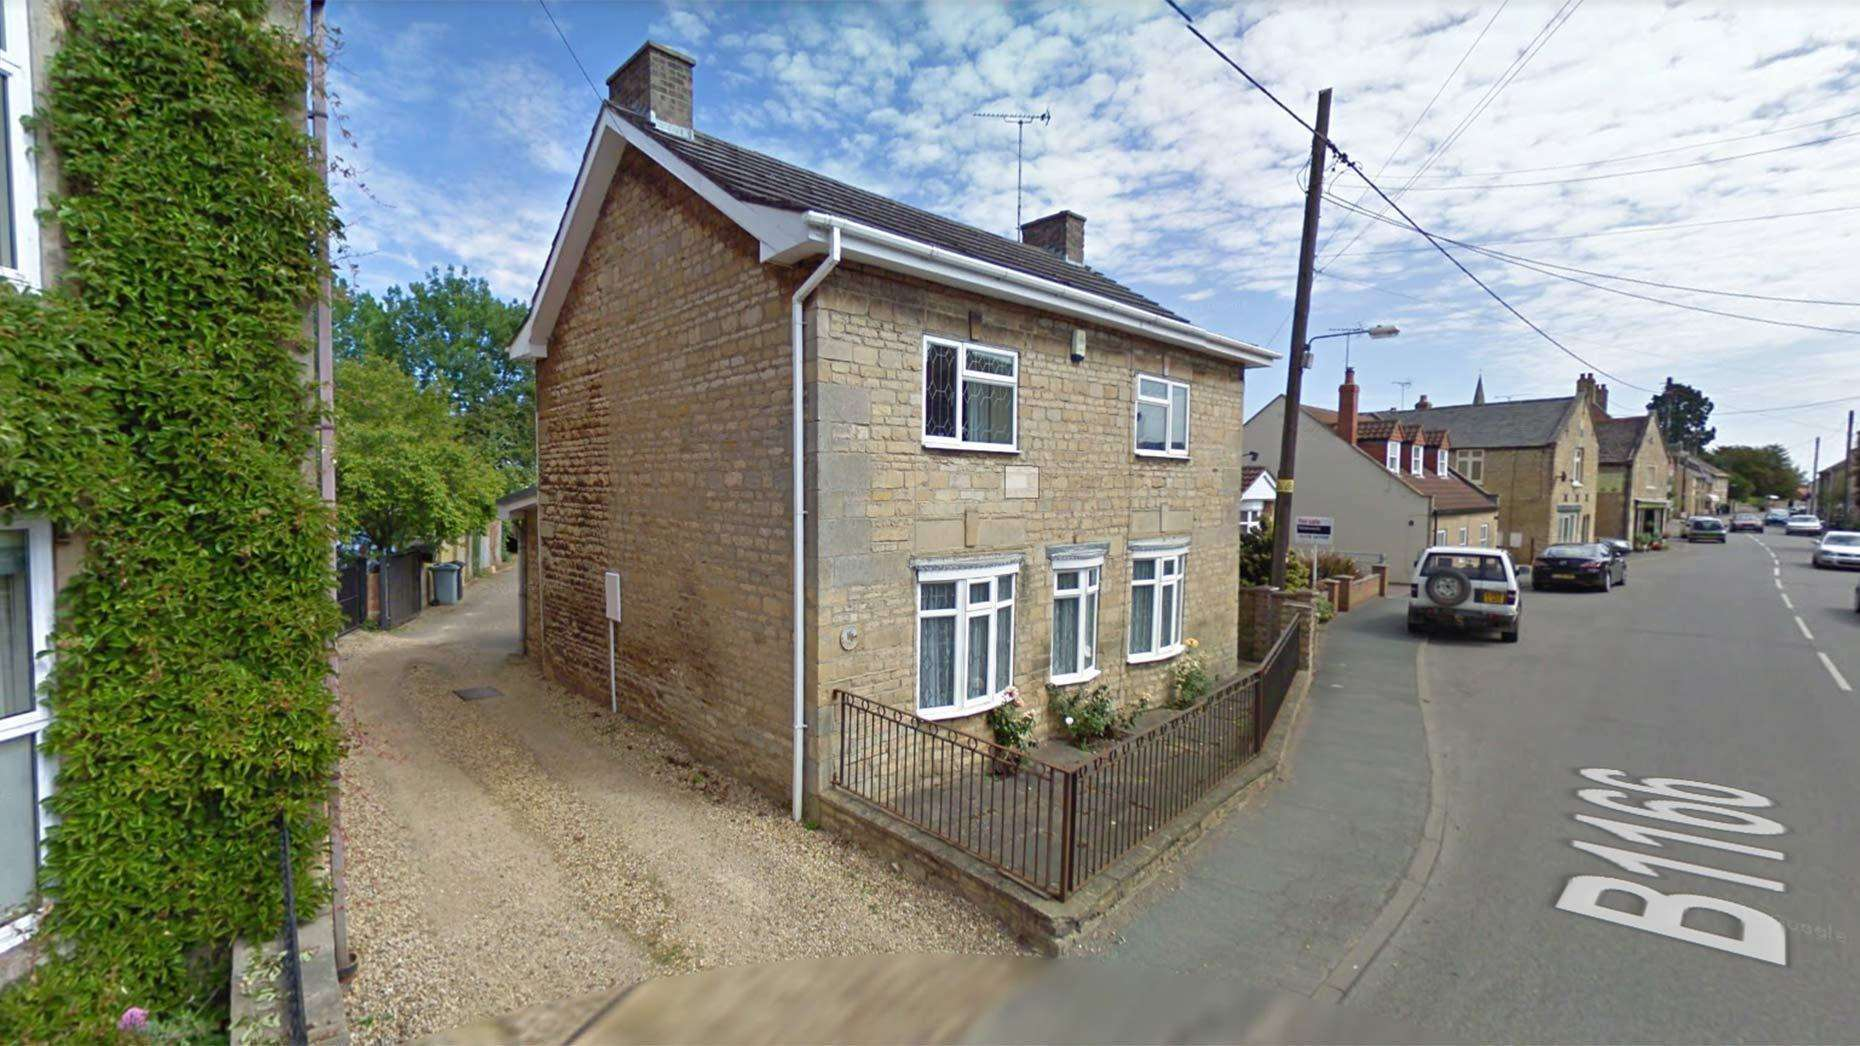 Plans have been submitted to turn a house in Deeping St James into supported accommodation for people with physical or mental support needs. (4688293)